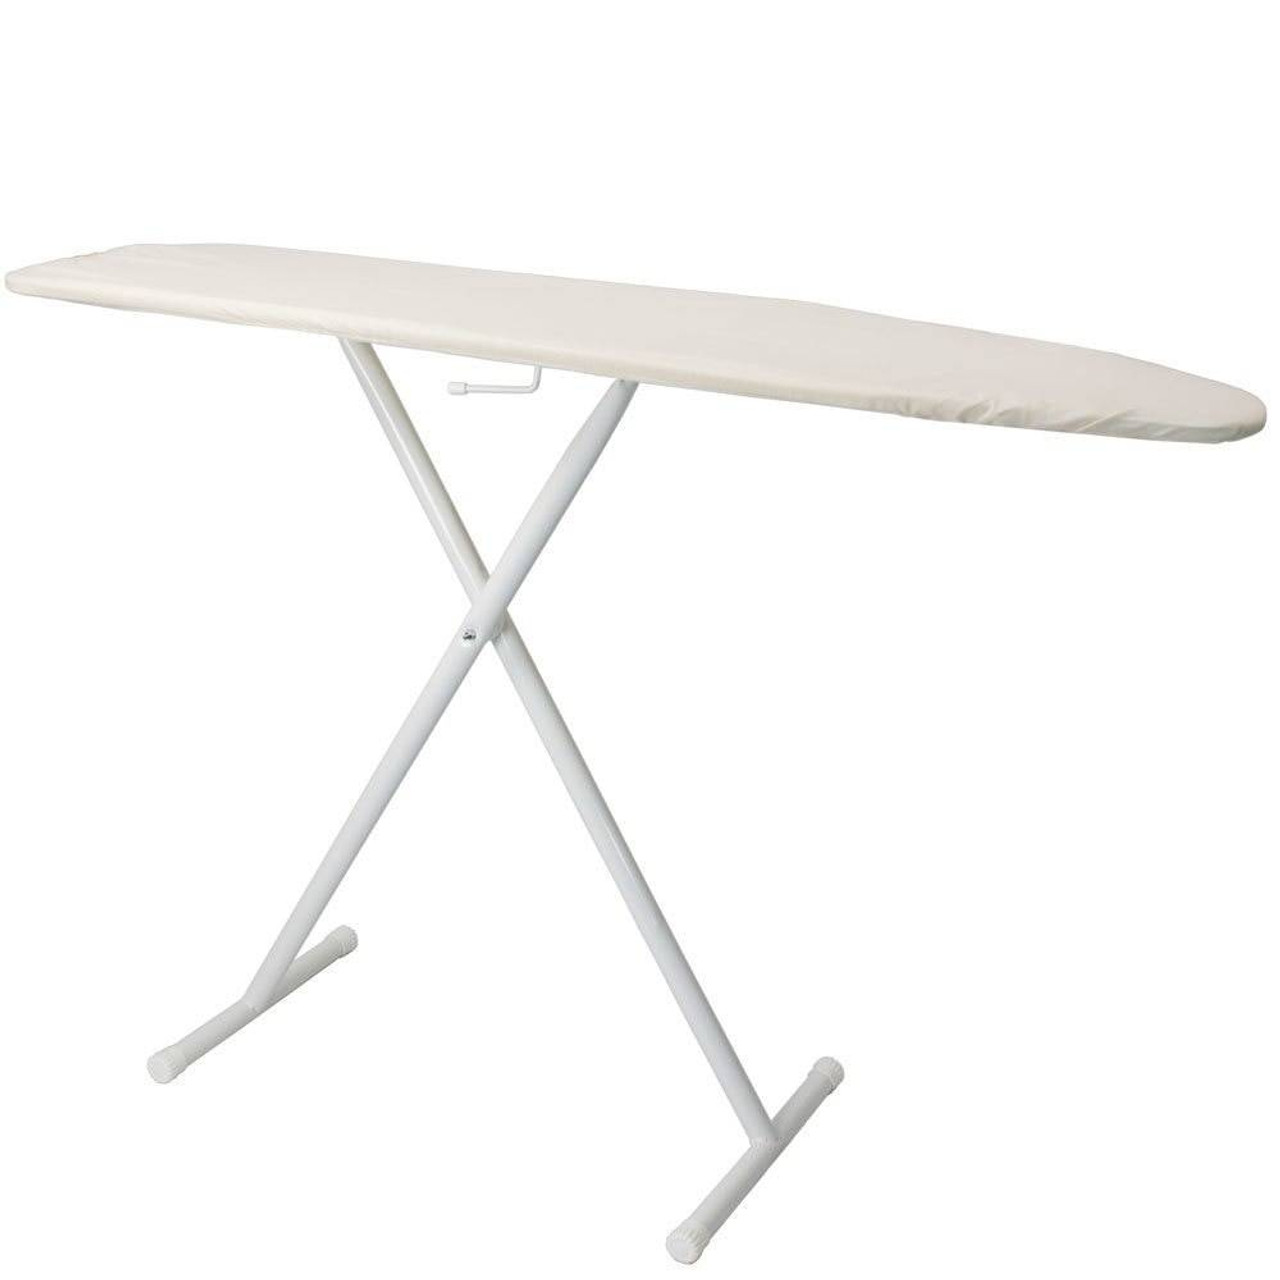 HOSPITALITY 1 SOURCE HOSPITALITY 1 SOURCE or BASIC IRONING BOARD or LIGHT KHAKI COVER or 53LX13W or POWDER COAT WHITE LEGS FINISH or 4 PER CASE